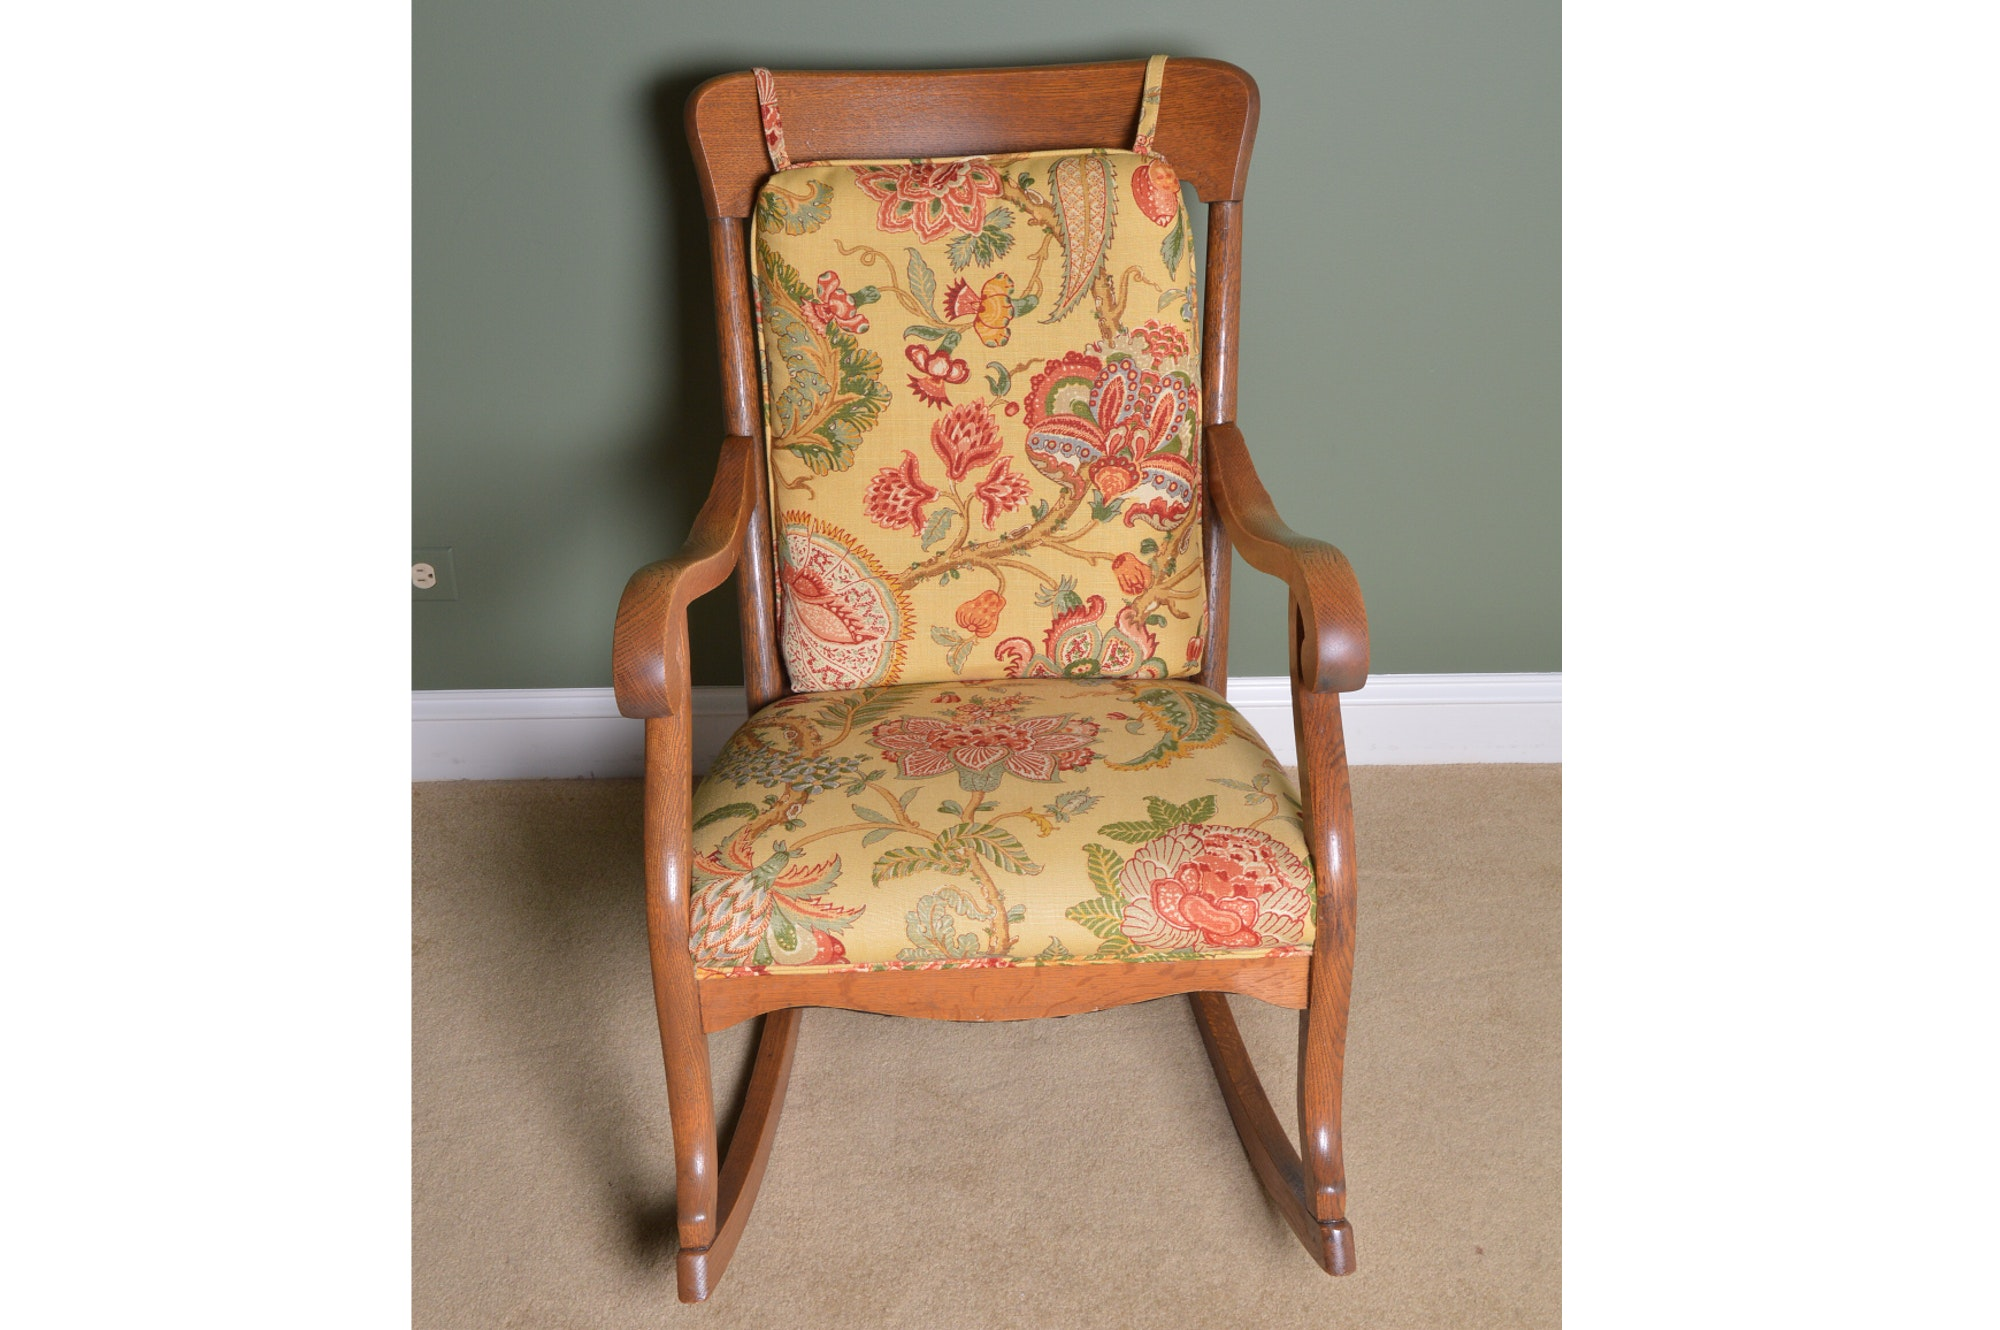 Vintage Oak Regency Style Rocking Chair